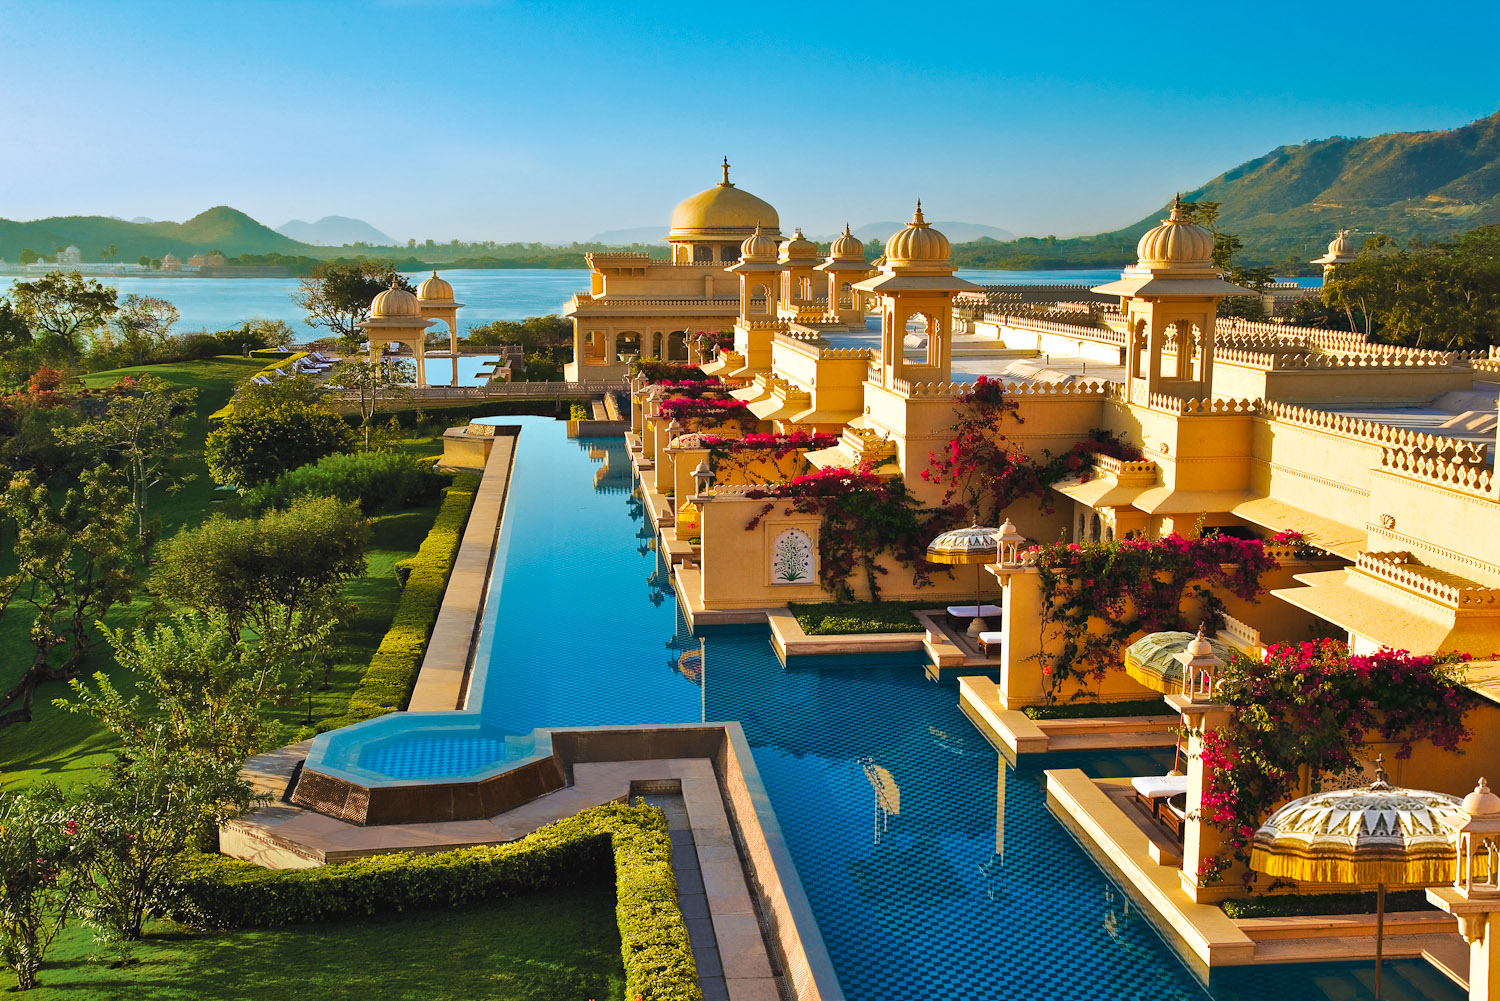 Oberoi Udaivilas in Udaipur, India